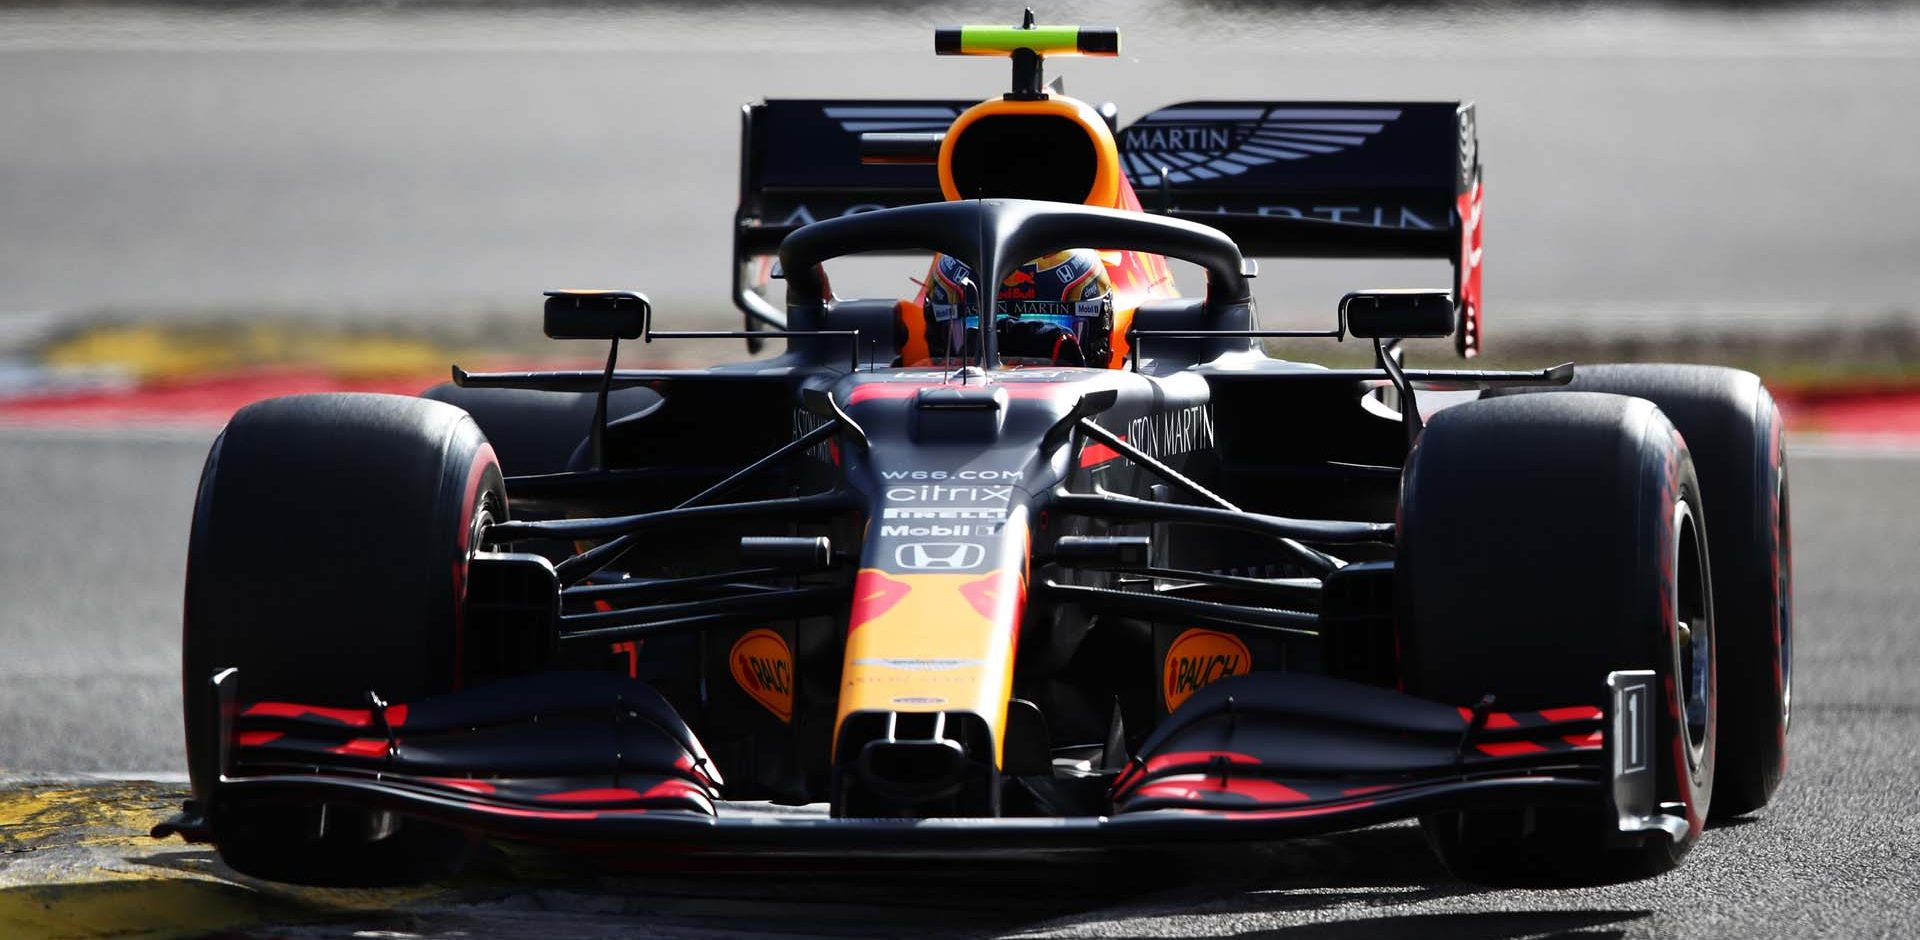 NUERBURG, GERMANY - OCTOBER 10: Alexander Albon of Thailand driving the (23) Aston Martin Red Bull Racing RB16 on track during qualifying ahead of the F1 Eifel Grand Prix at Nuerburgring on October 10, 2020 in Nuerburg, Germany. (Photo by Joe Portlock/Getty Images)